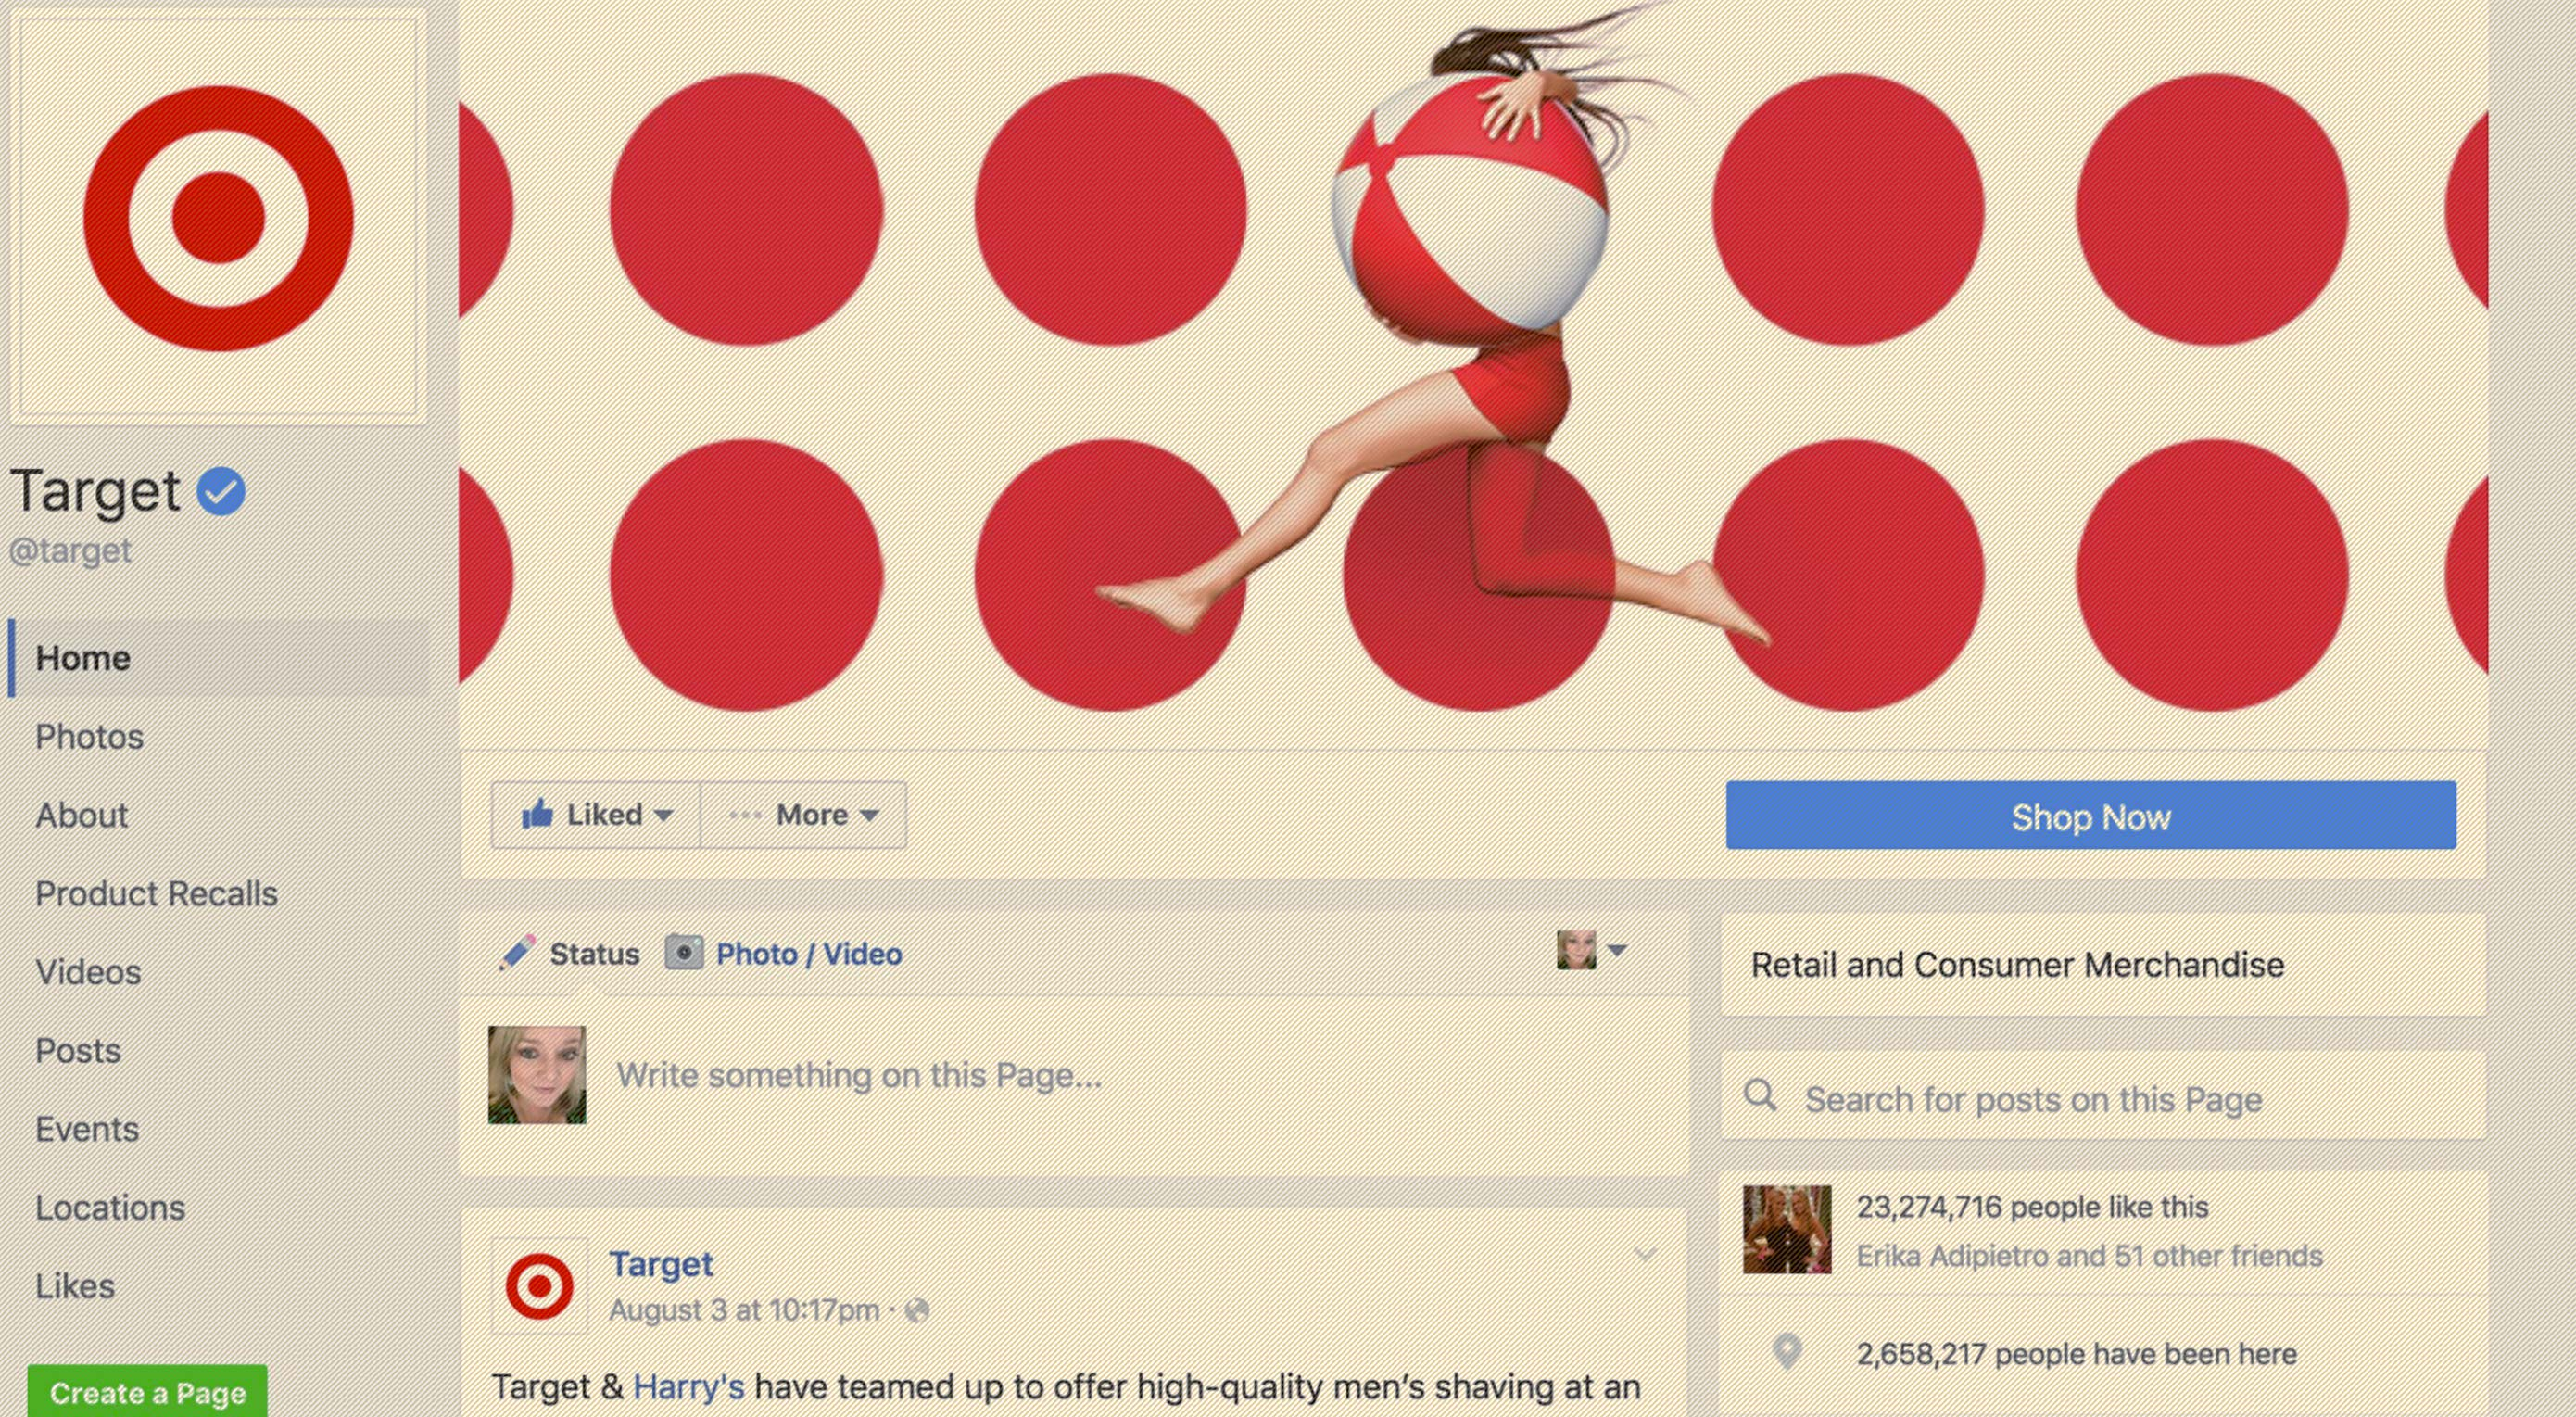 Facebook delivers a better UX for businesses